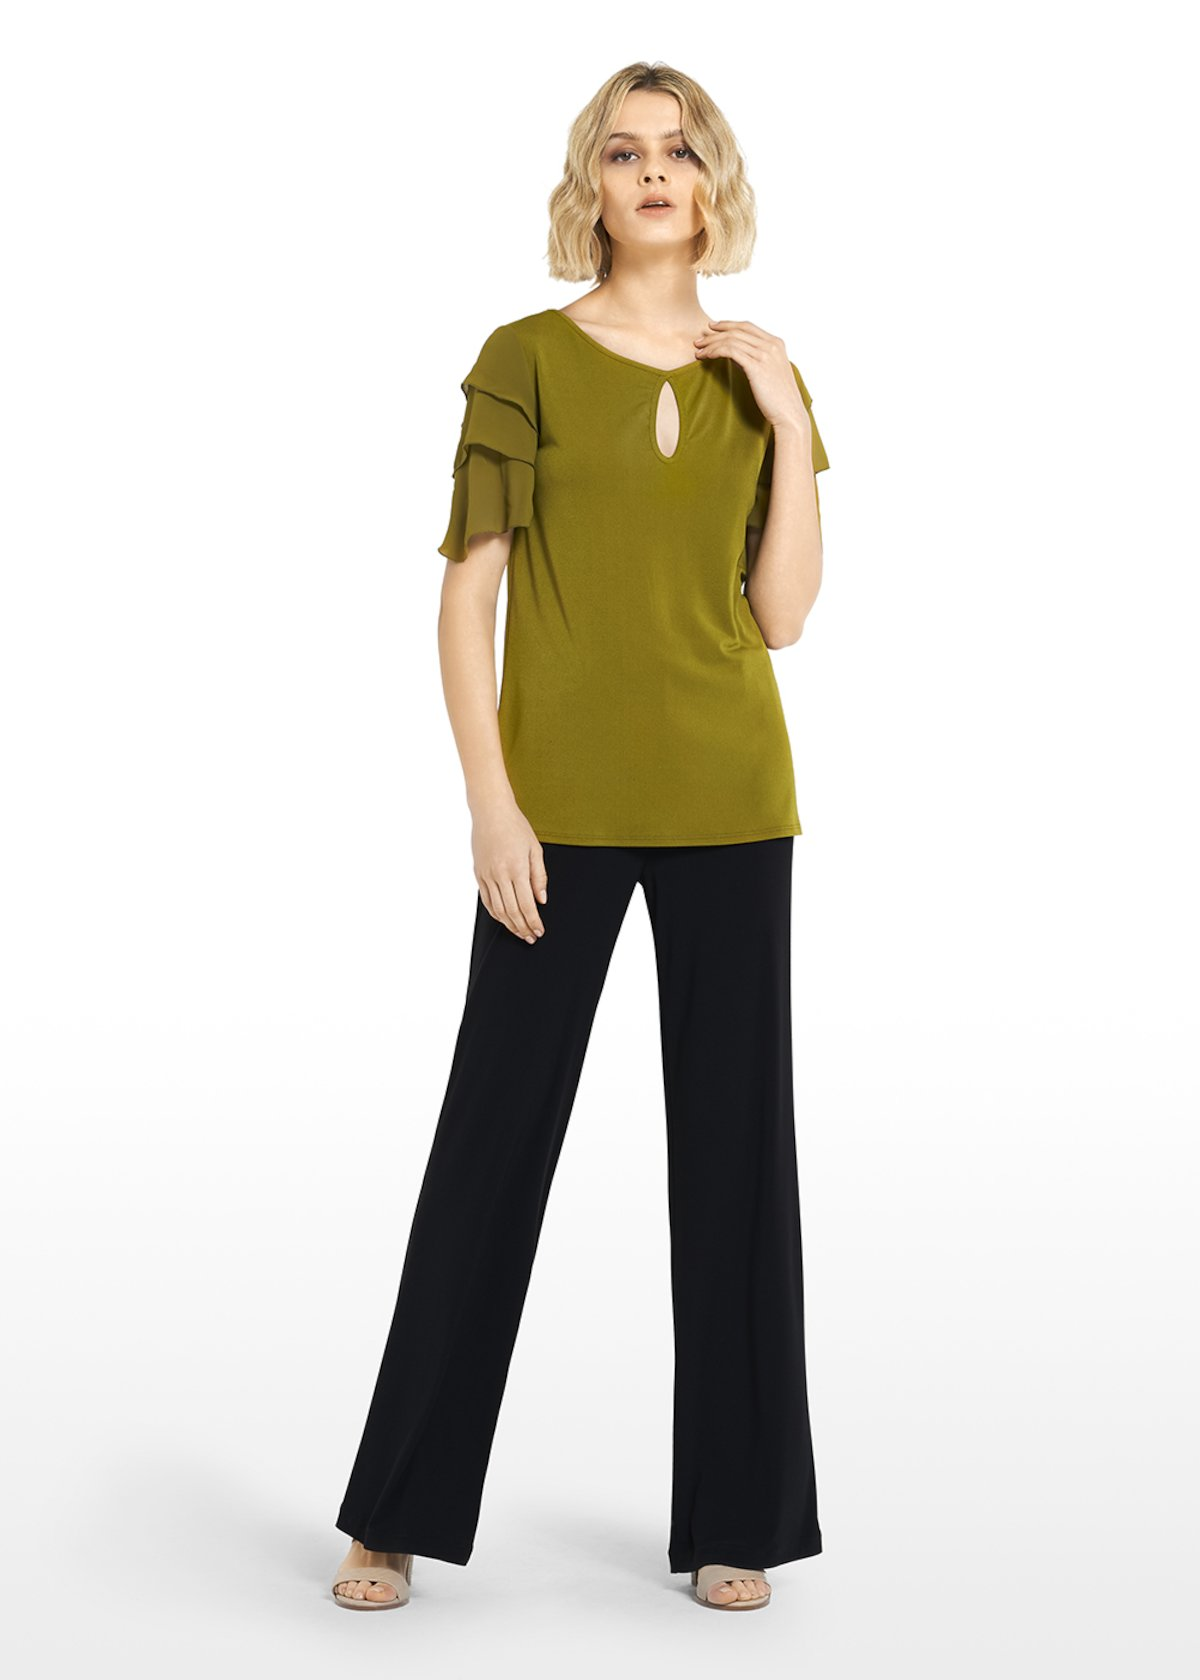 Jersey t-shirt with drop-shaped neckline - Avocado - Woman - Category image